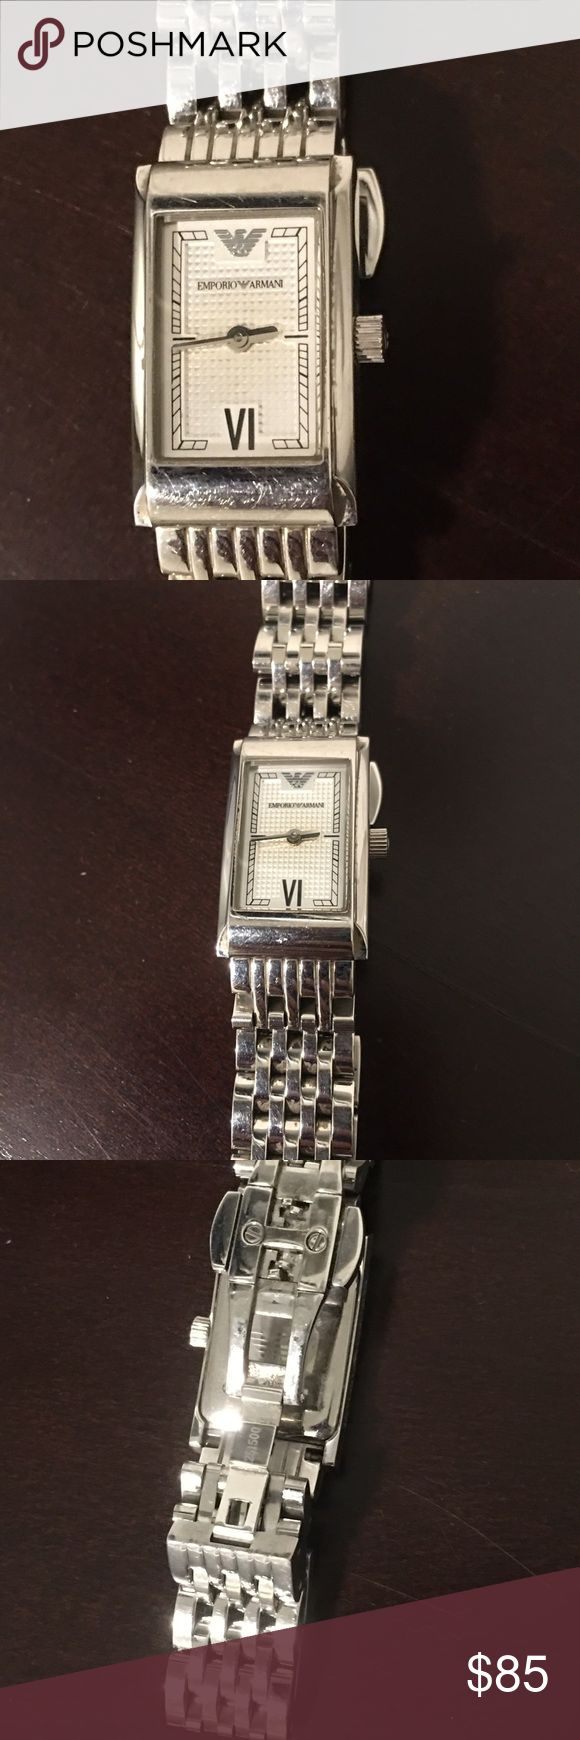 Silver Emporio Armani Watch **1-HR FLASH SALE** Silver Women's Emporio Armani Watch. Some wear as shown. Not all links attached but I have all links from original purchase. New battery needed. Emporio Armani Accessories Watches